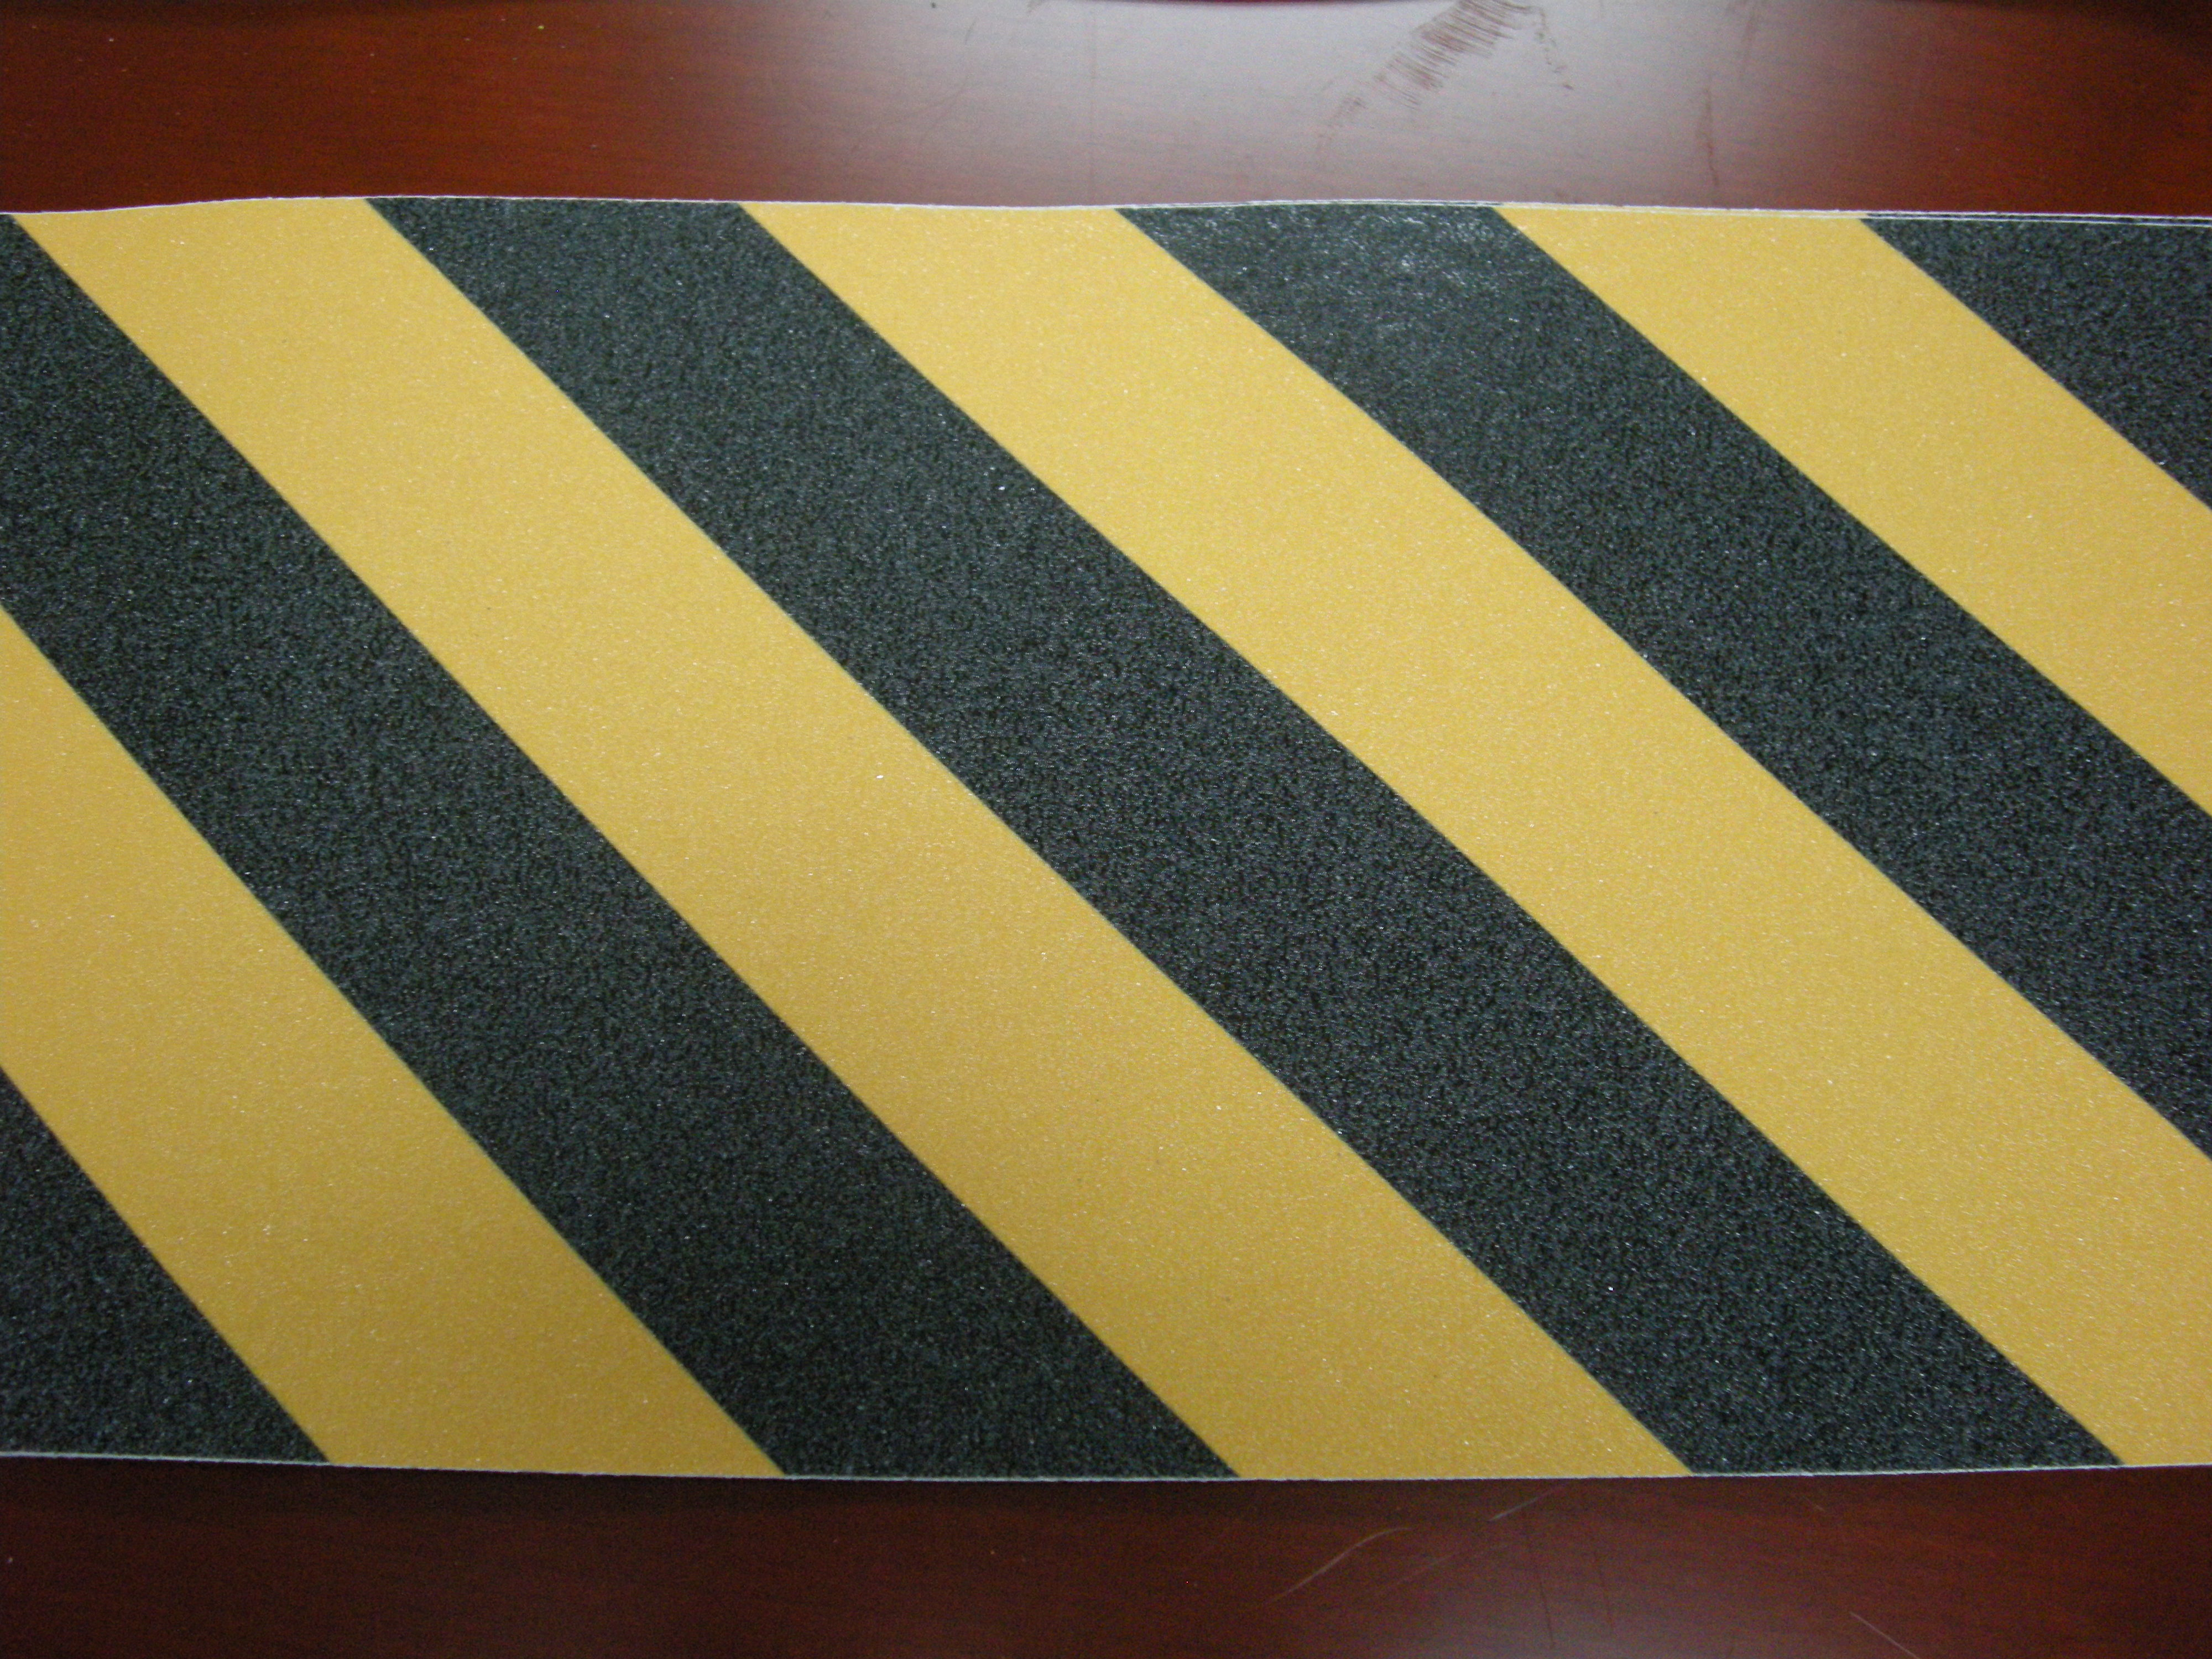 Anti-slip Tape for Indoor Use and 40 Items Surface Granularity